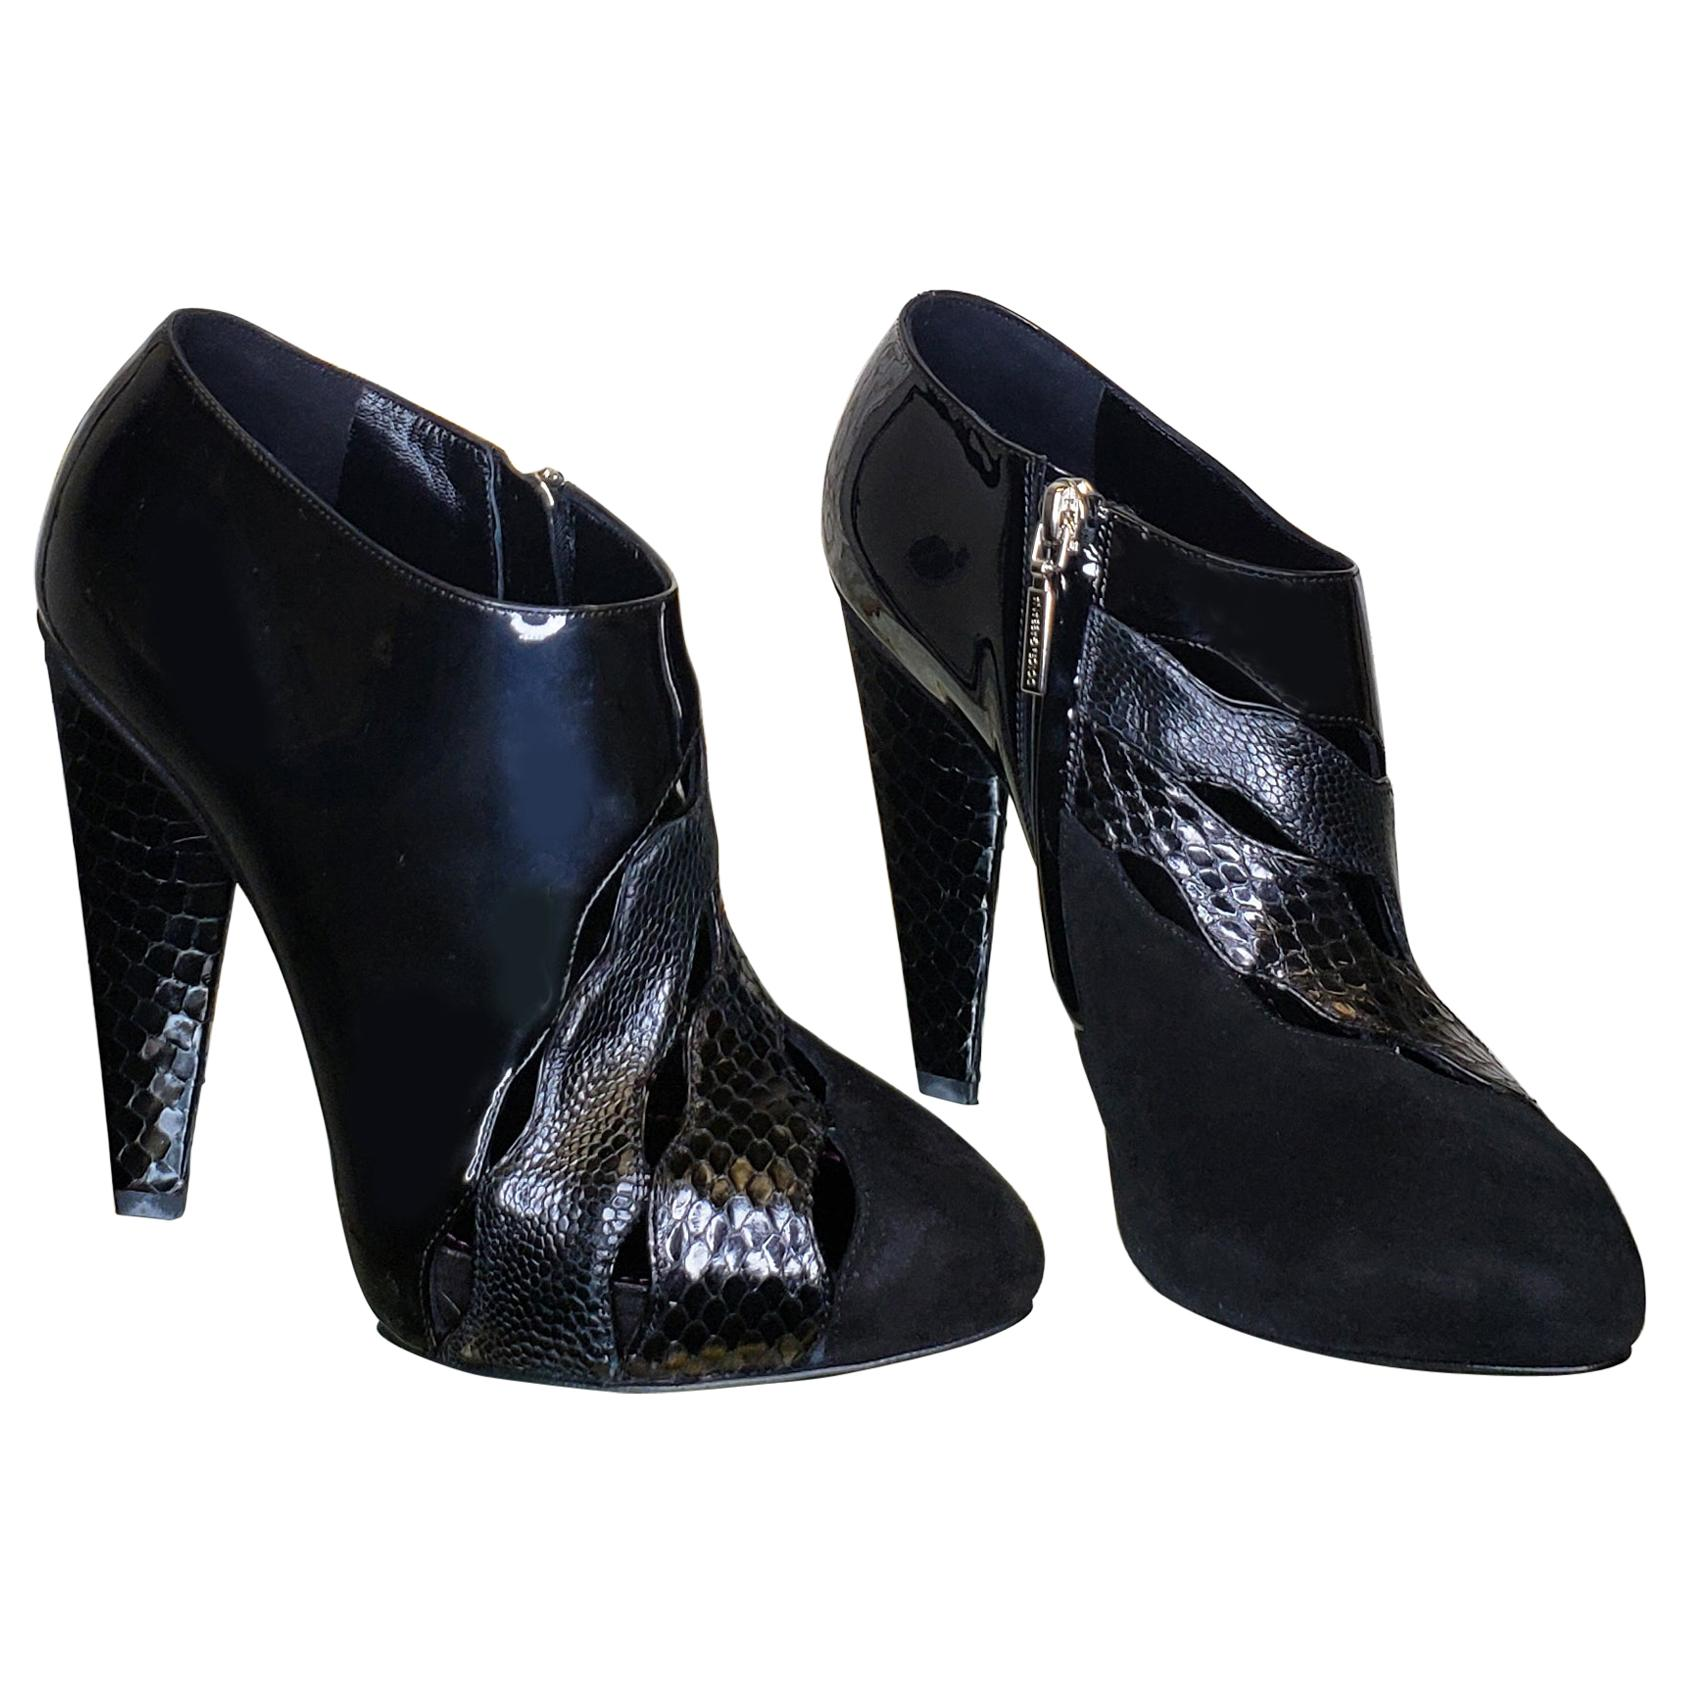 New DOLCE & GABBANA BLACK PYTHON AND PATENT LEATHER ANKLE BOOTS 36.5-6.5; 38-8